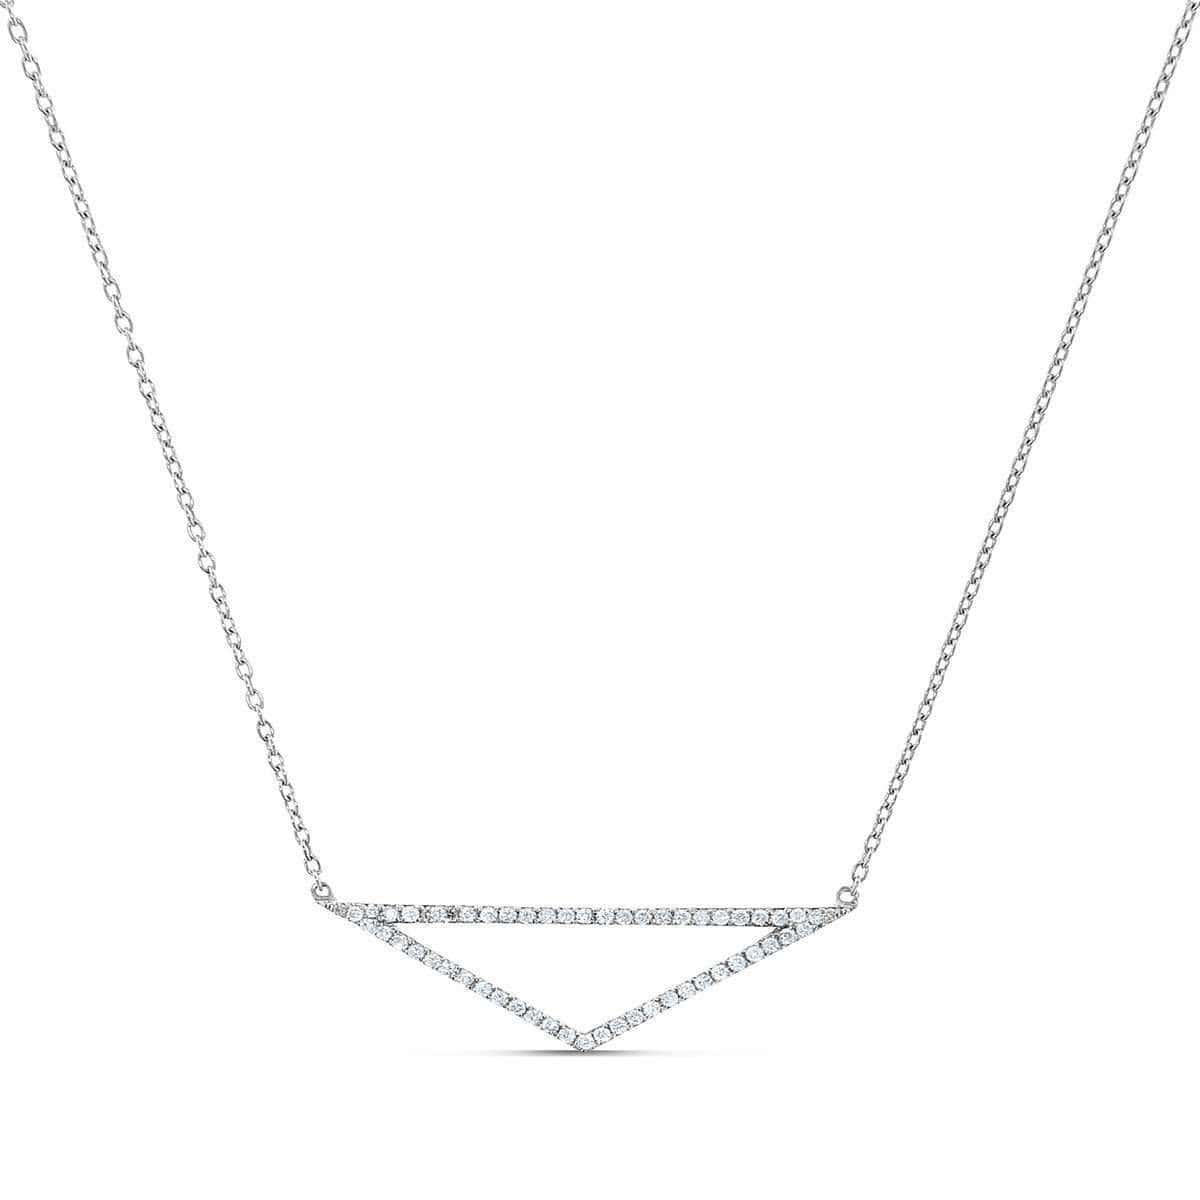 18kt White Gold Triangle Necklace With Diamonds